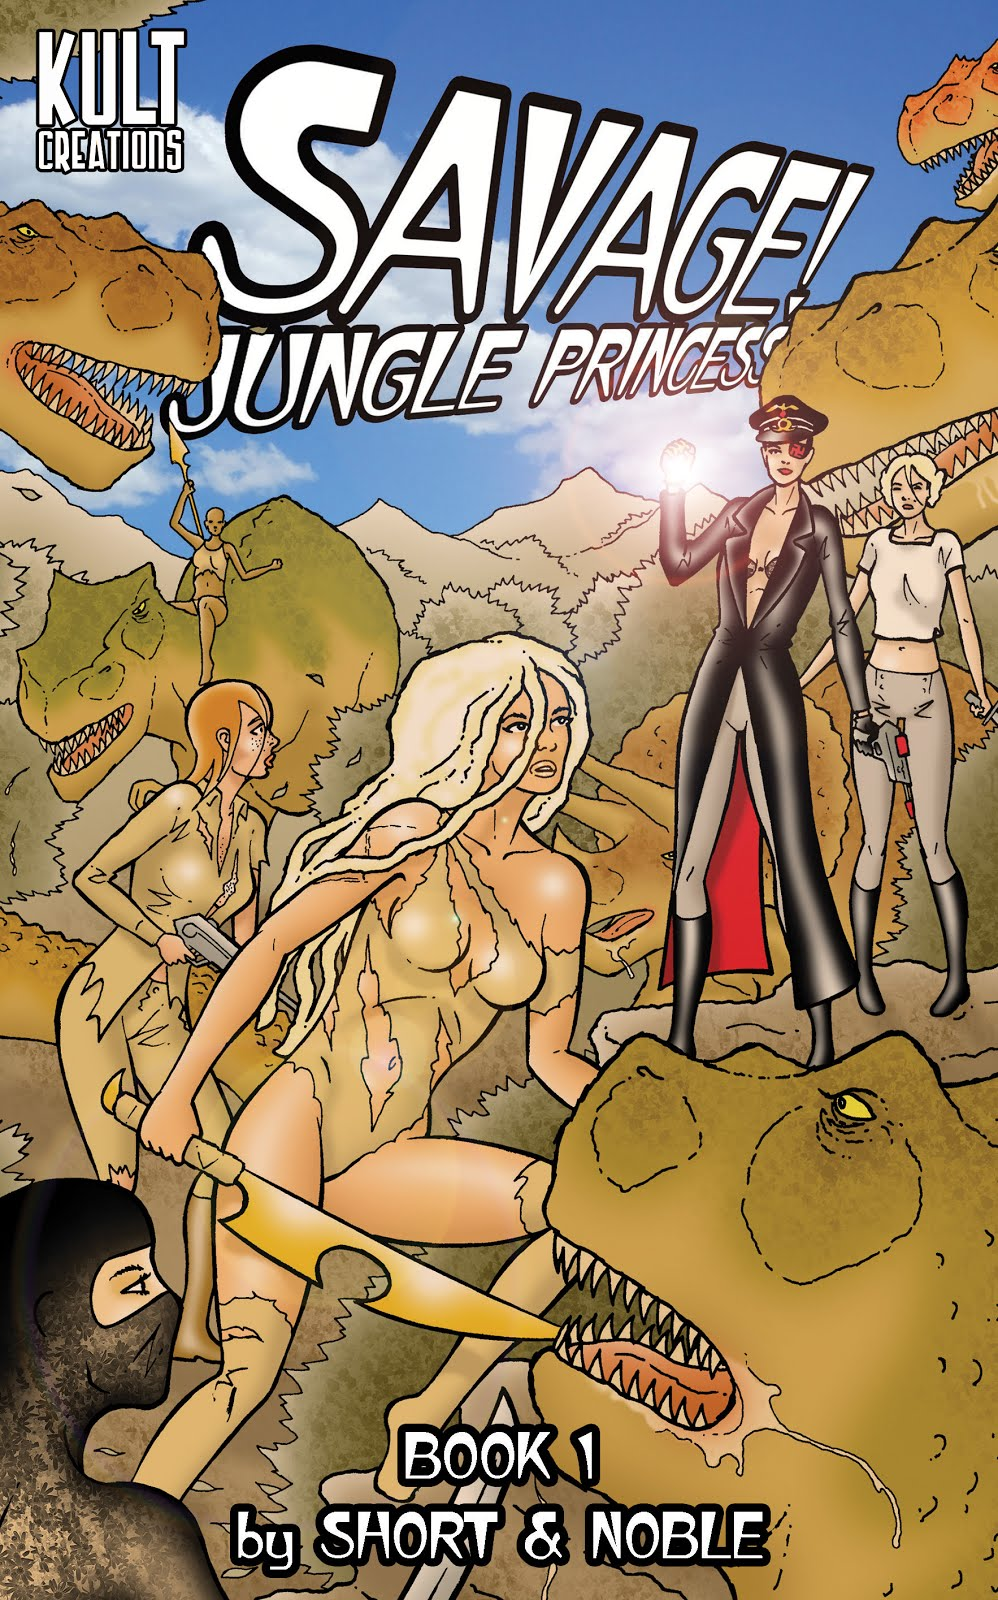 Buy 'Savage! Jungle Princess' Book 1 Digital Version BELOW!